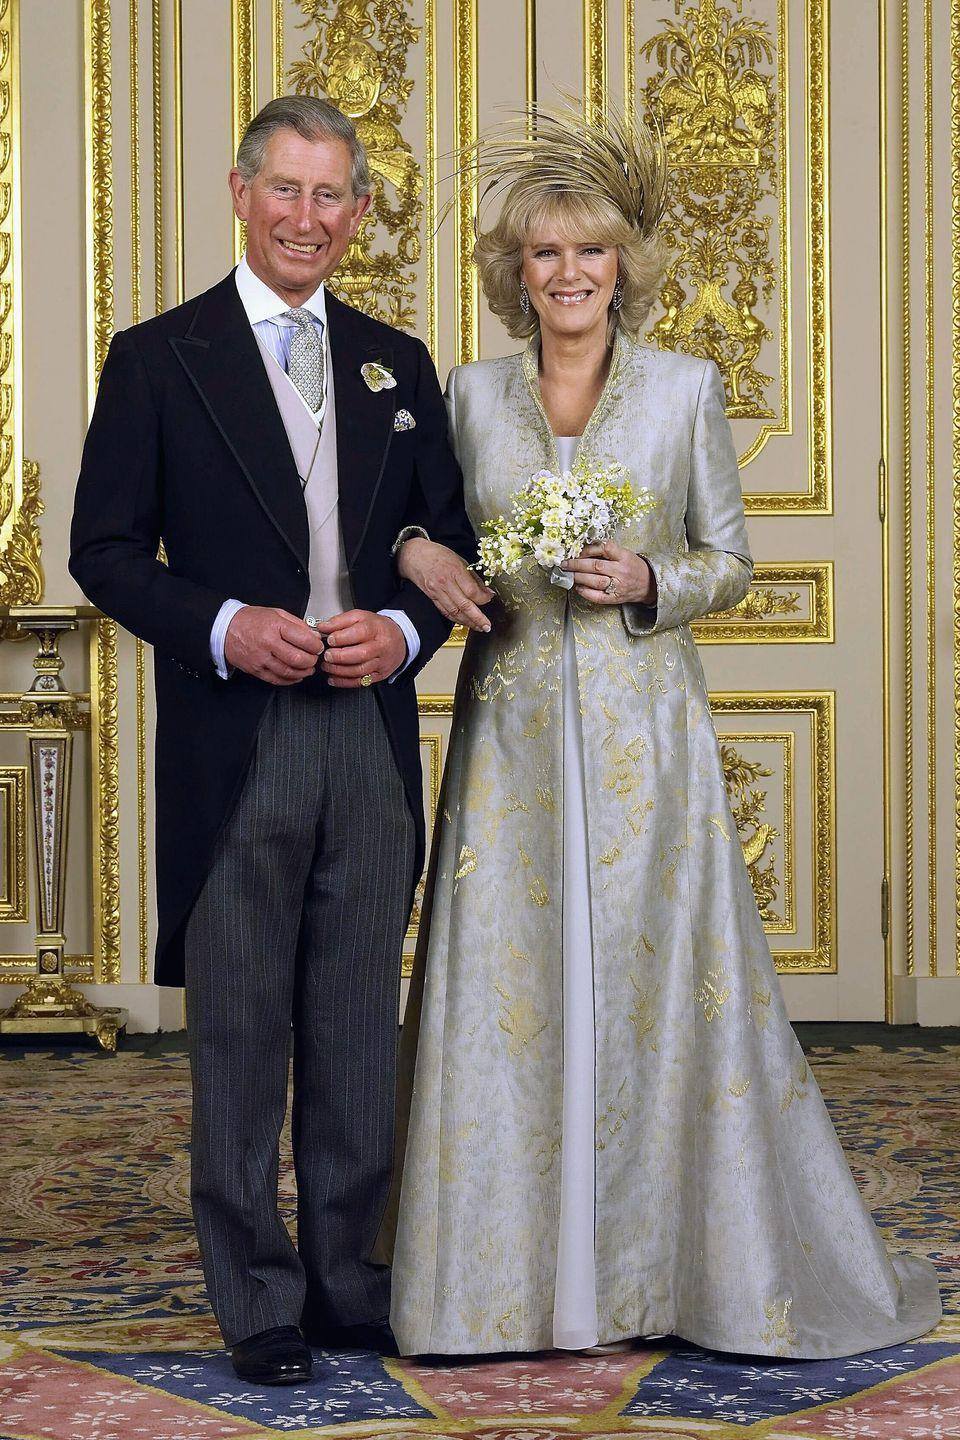 "<p>Prince Charles met Camilla (then Camilla Shand) in 1971 at a party; the couple were introduced by Charles' college girlfriend, Lucia Santa Cruz, the daughter of the former Chilean ambassador to London, <a href=""https://www.popsugar.com/celebrity/How-Did-Prince-Charles-Camilla-Meet-43728081"" rel=""nofollow noopener"" target=""_blank"" data-ylk=""slk:reports PopSugar"" class=""link rapid-noclick-resp"">reports <em>PopSugar</em></a>. While chatting at the party, Camilla reportedly made a joke about her and Charles' ancestral connections,""My great-grandmother was the mistress of your great-great-grandfather. I feel we have something in common."" </p><p>The two began dating almost immediately, and parted ways when Charles left for the Royal Navy. When he arrived home eight months afterward, Camilla was engaged to Andrew Parker Bowles, whom she married in 1973. Although Charles married Diana in 1981, he and Camilla were rumored to have carried on an affair throughout his relationship with Diana, which supposedly lead to the couple's divorce in 1995. After Diana's tragic death in 1997, Parker Bowles and Prince Charles continued their romance, and the two wed in 2005.</p>"